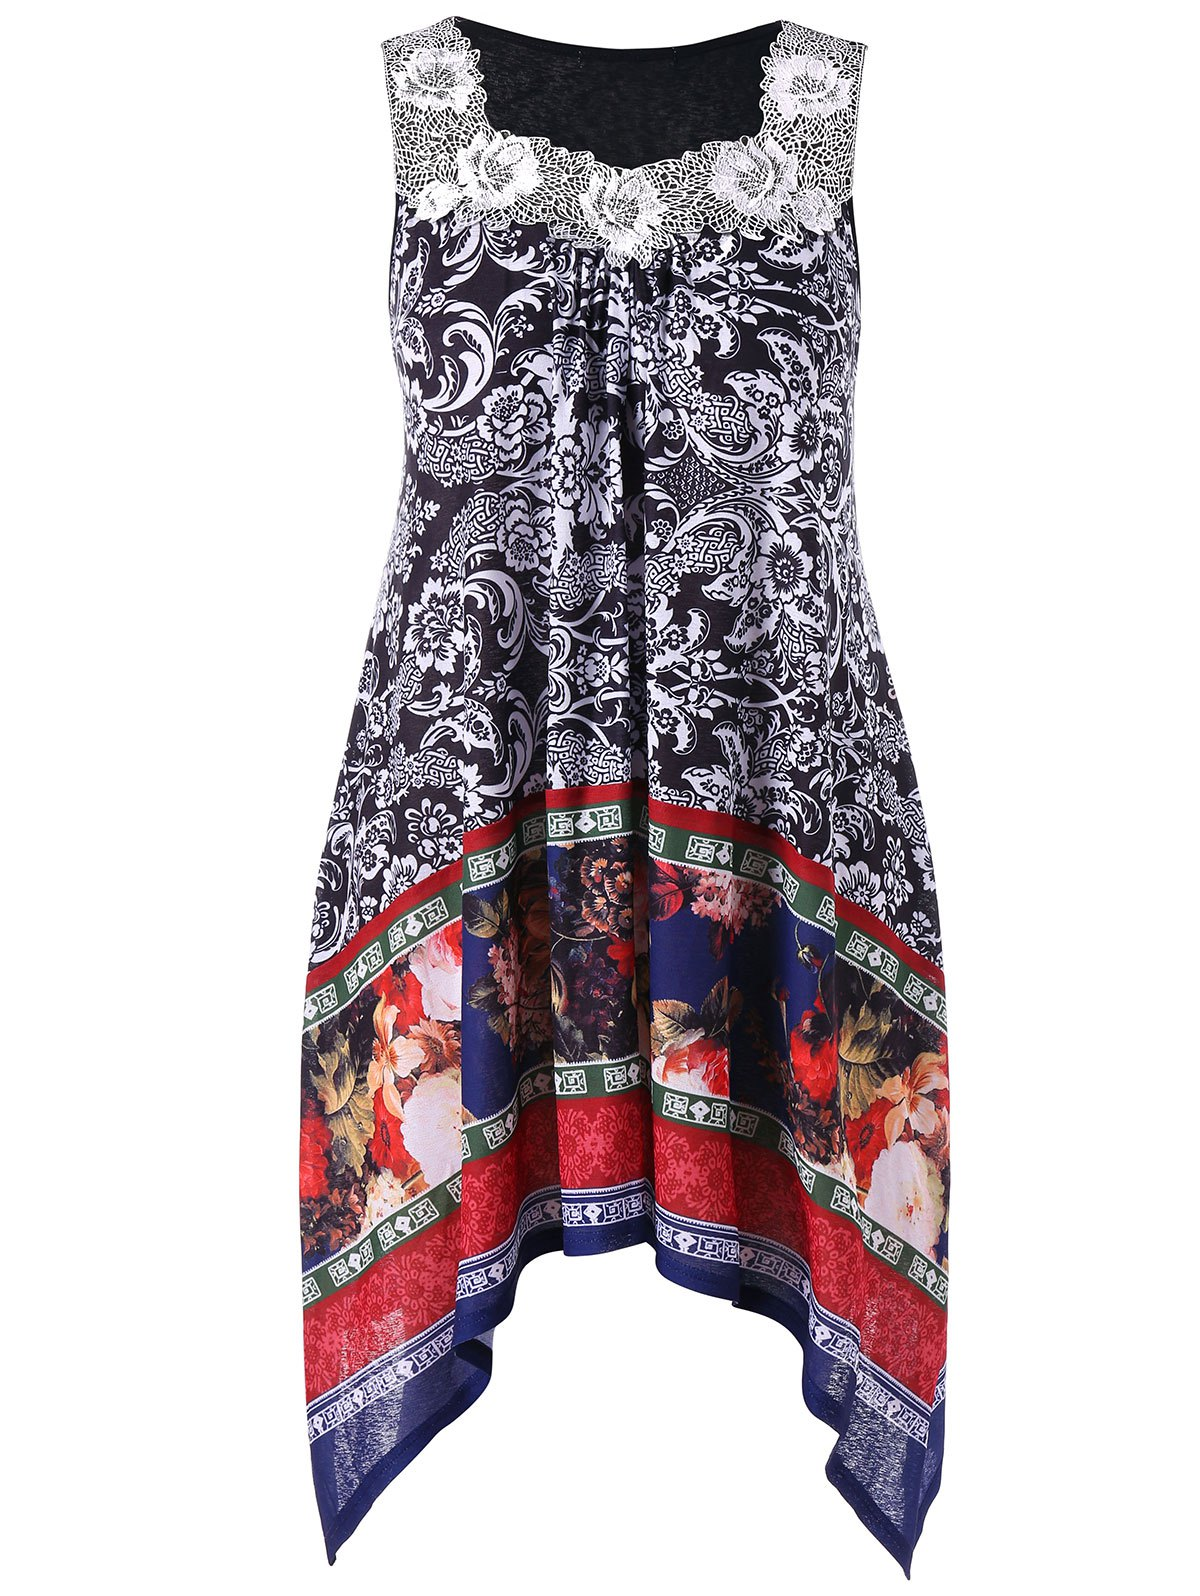 Plus Size Square Neck Floral Dress - multicolor 5X